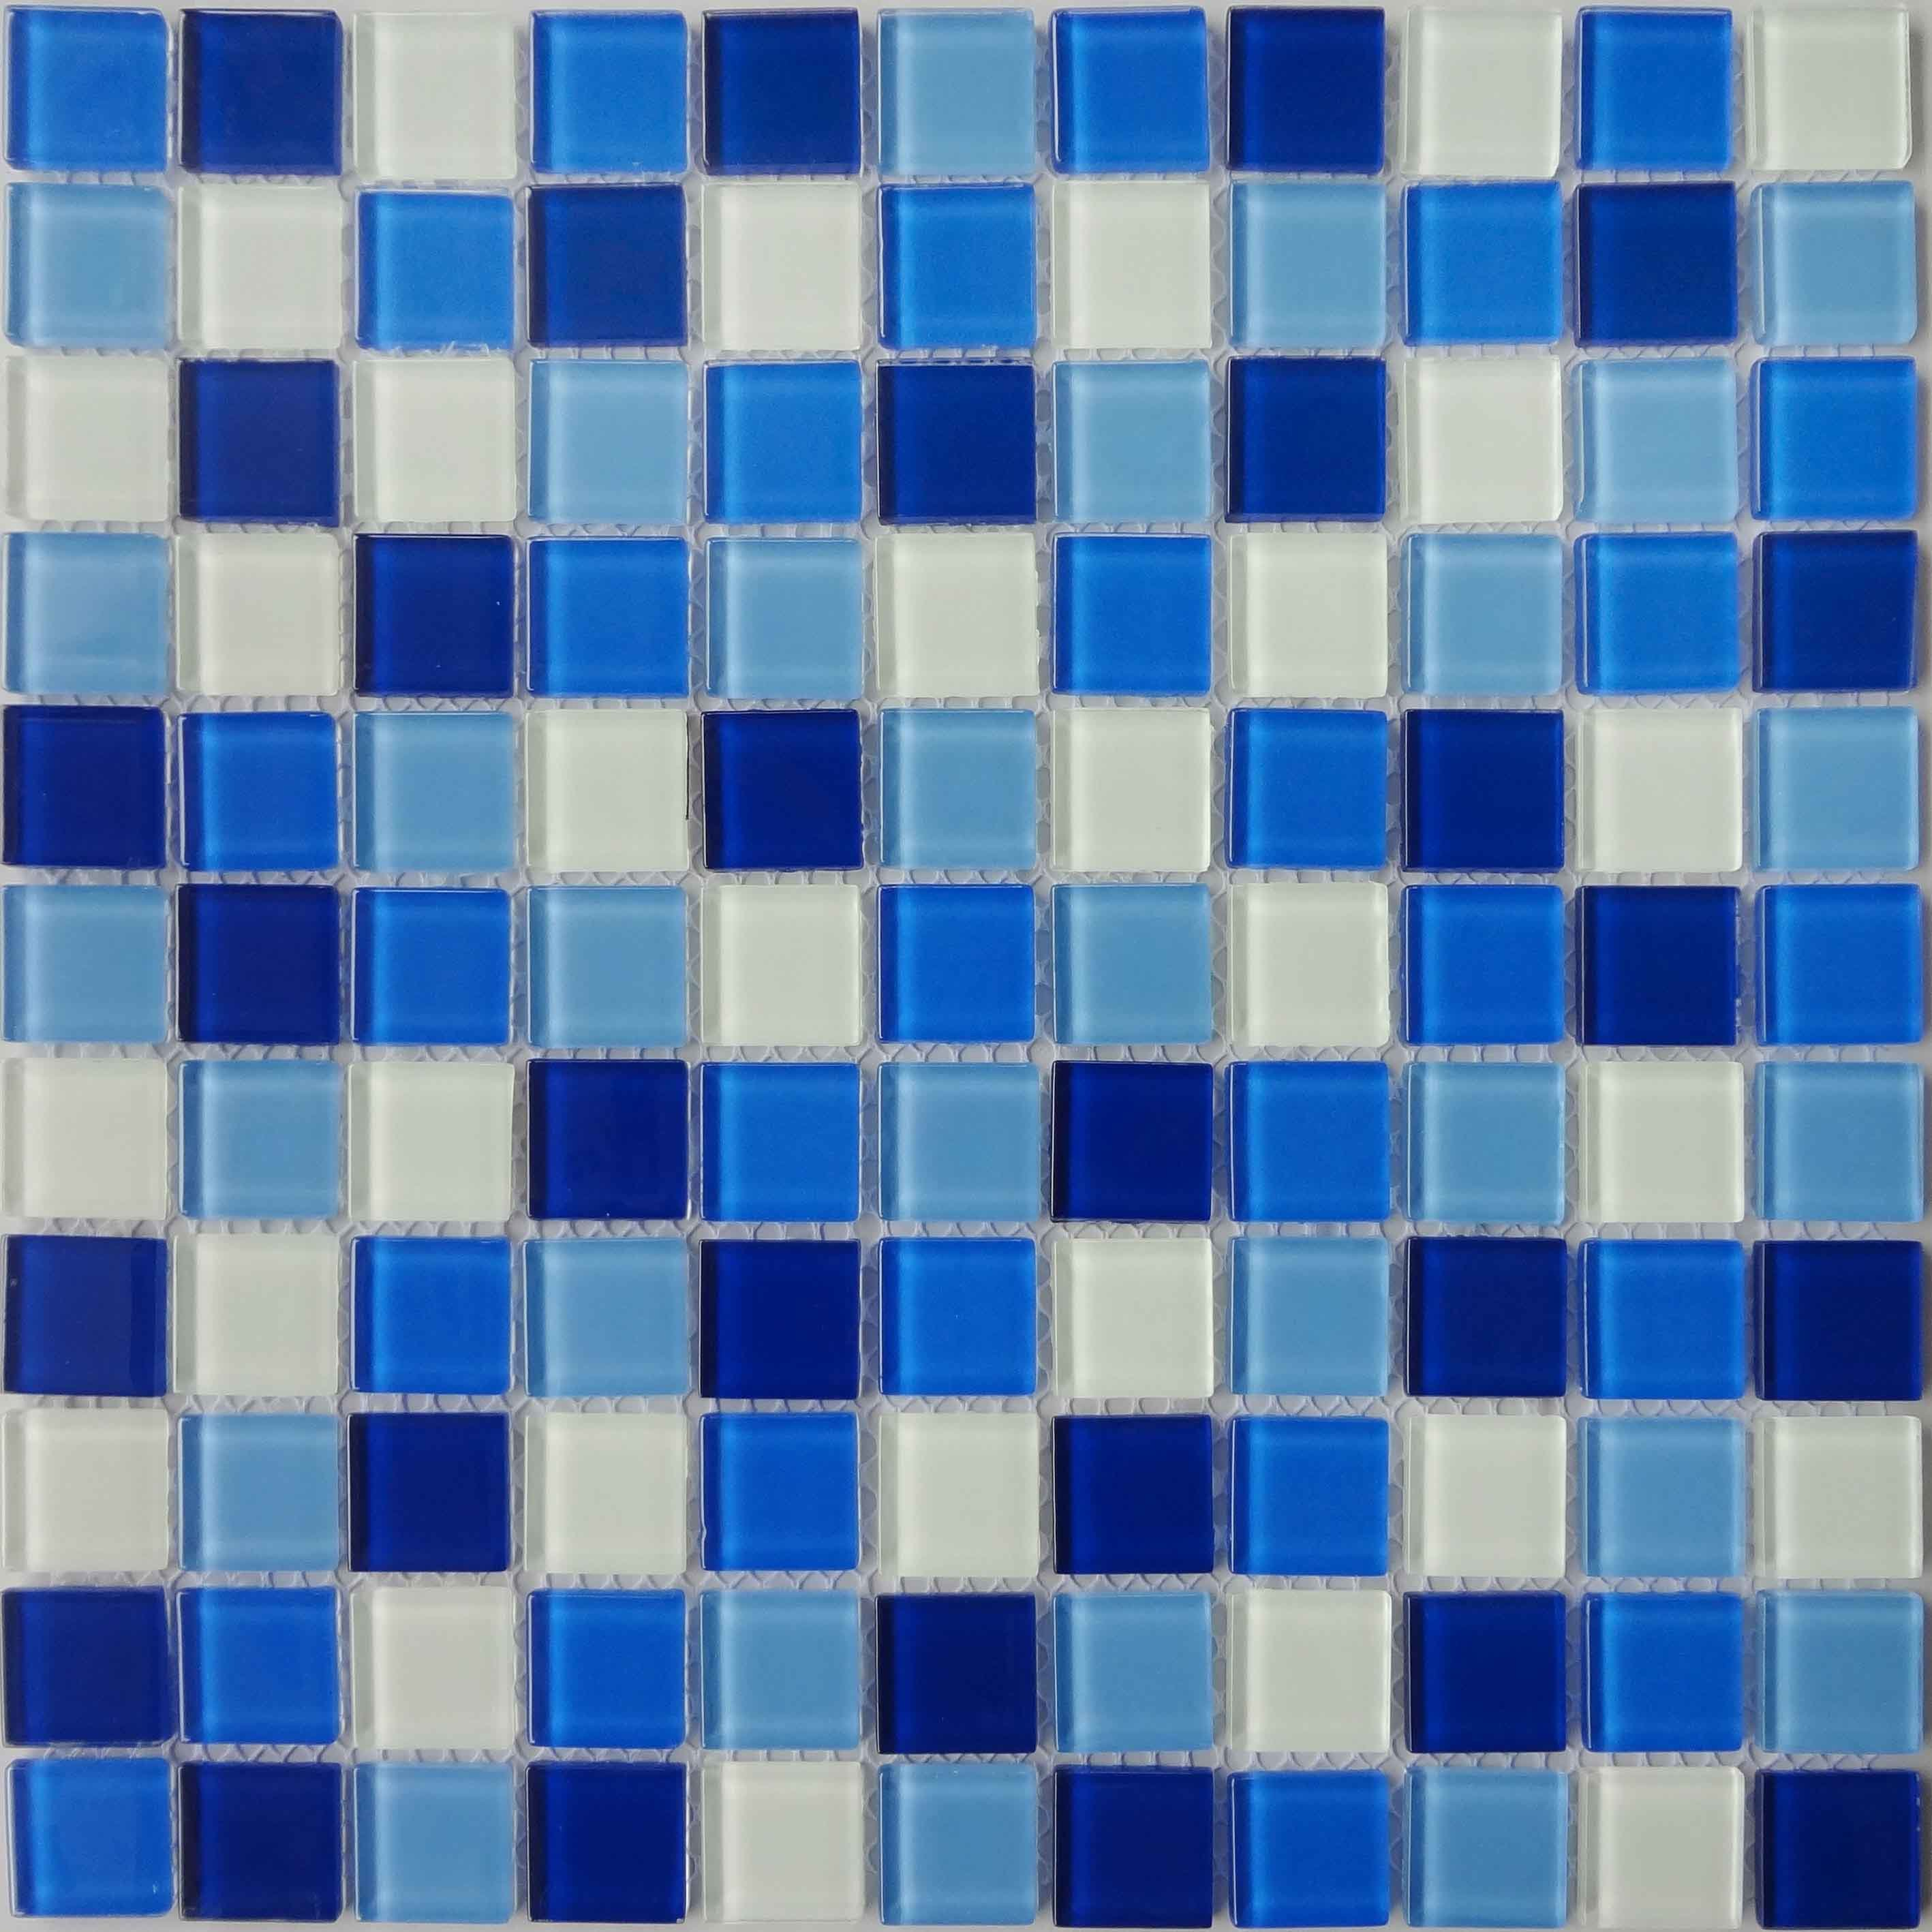 china swimming pool glass mosaic tiles china glass tiles mosaic for wall and floor. Black Bedroom Furniture Sets. Home Design Ideas